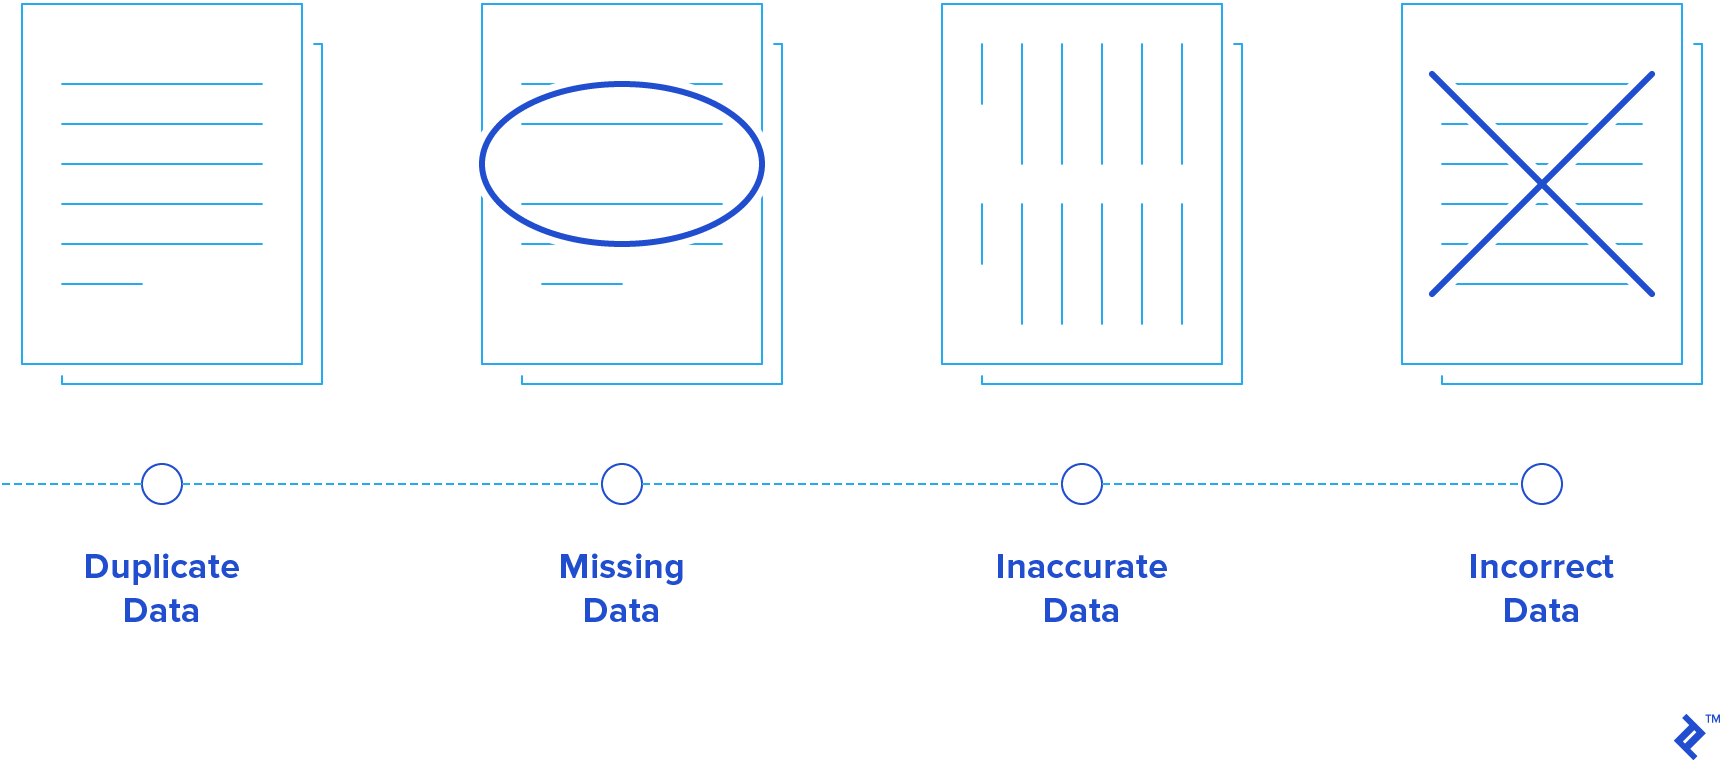 product managers have to work with limited data